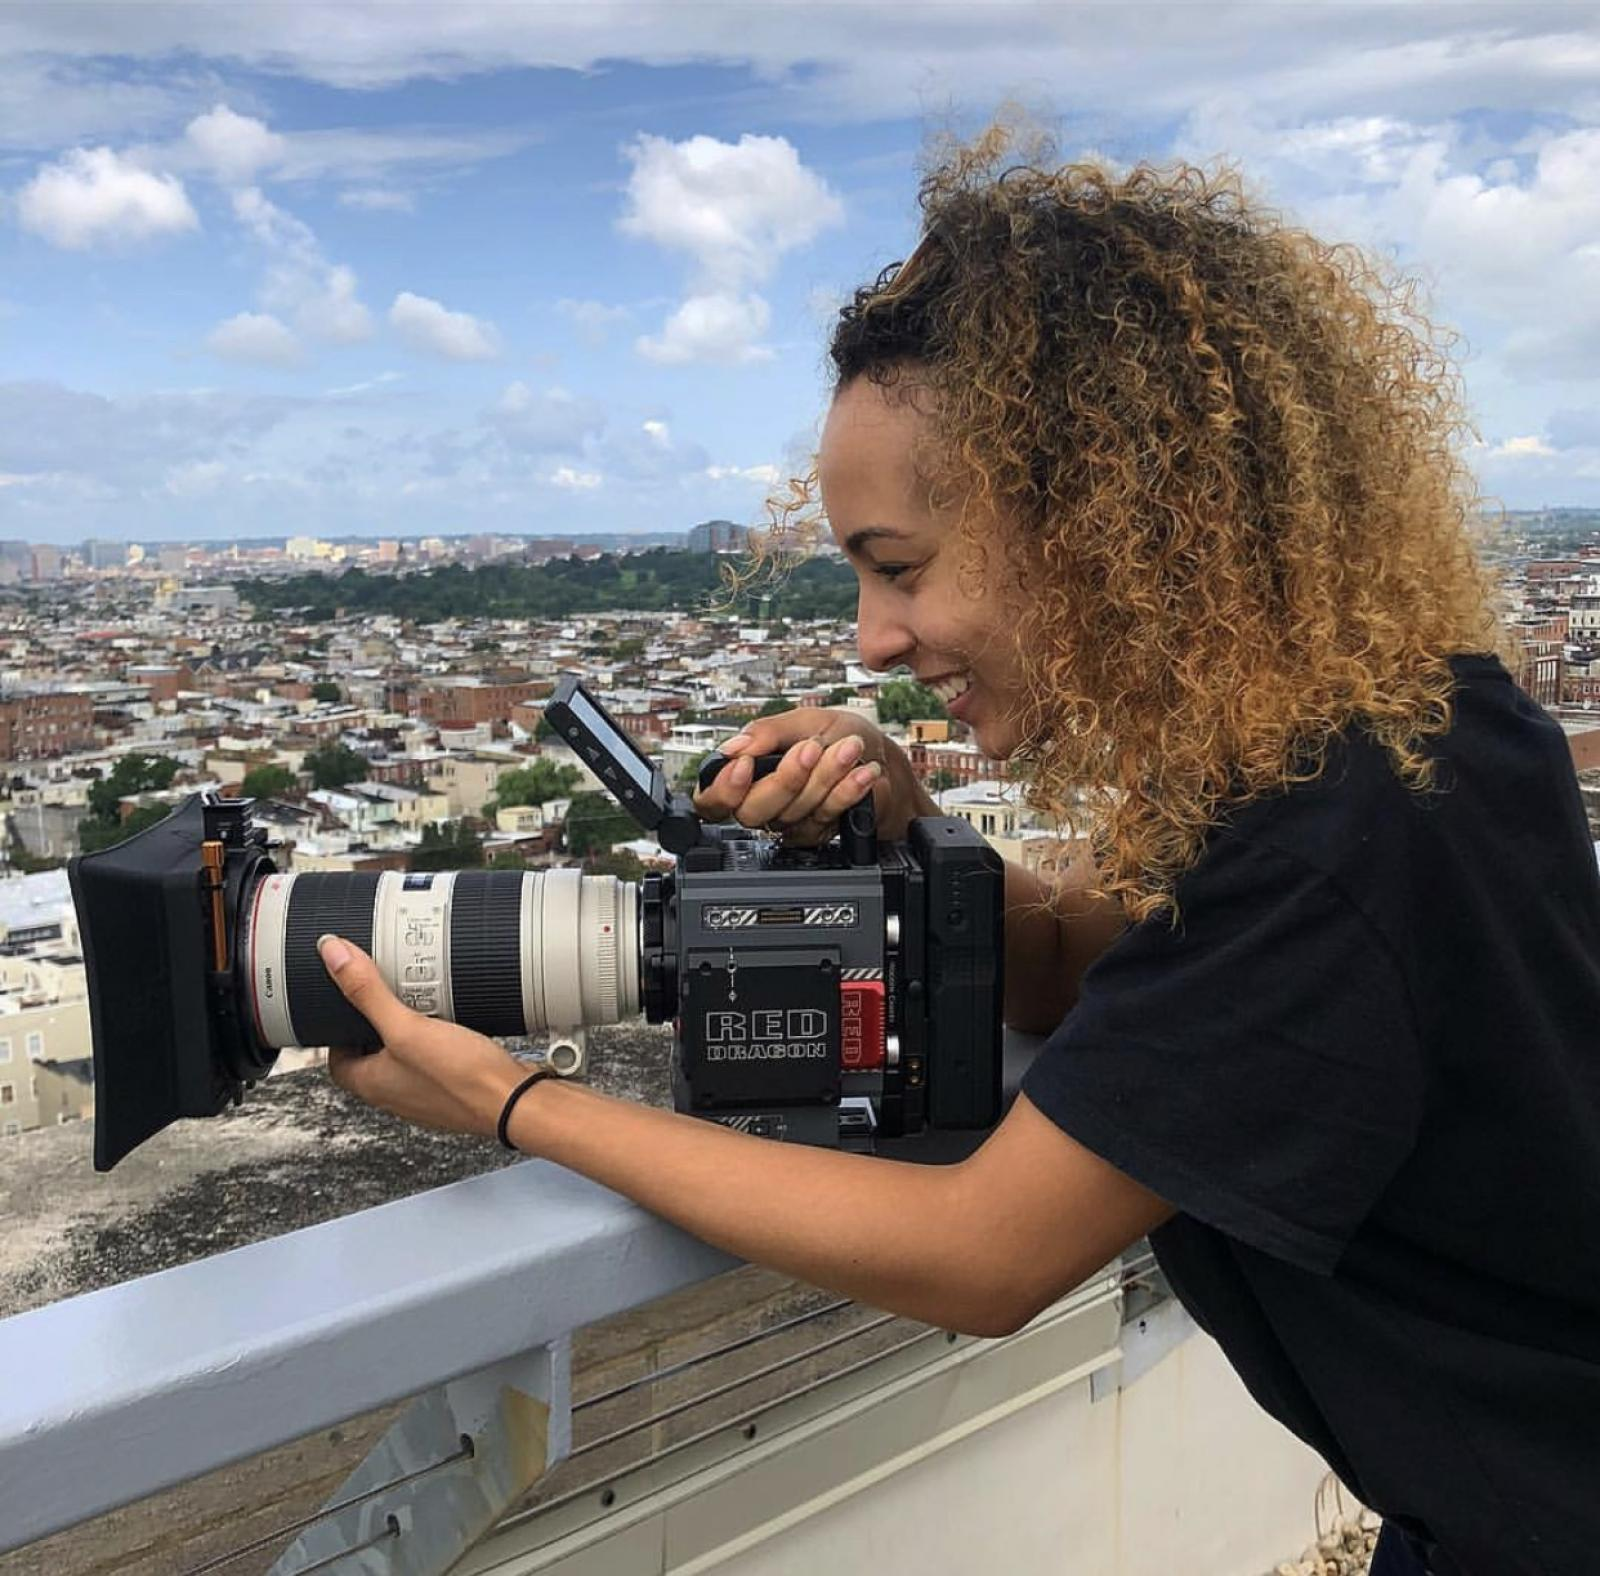 Behind the Scenes with Destiny Brown, Wide Angle Youth Media